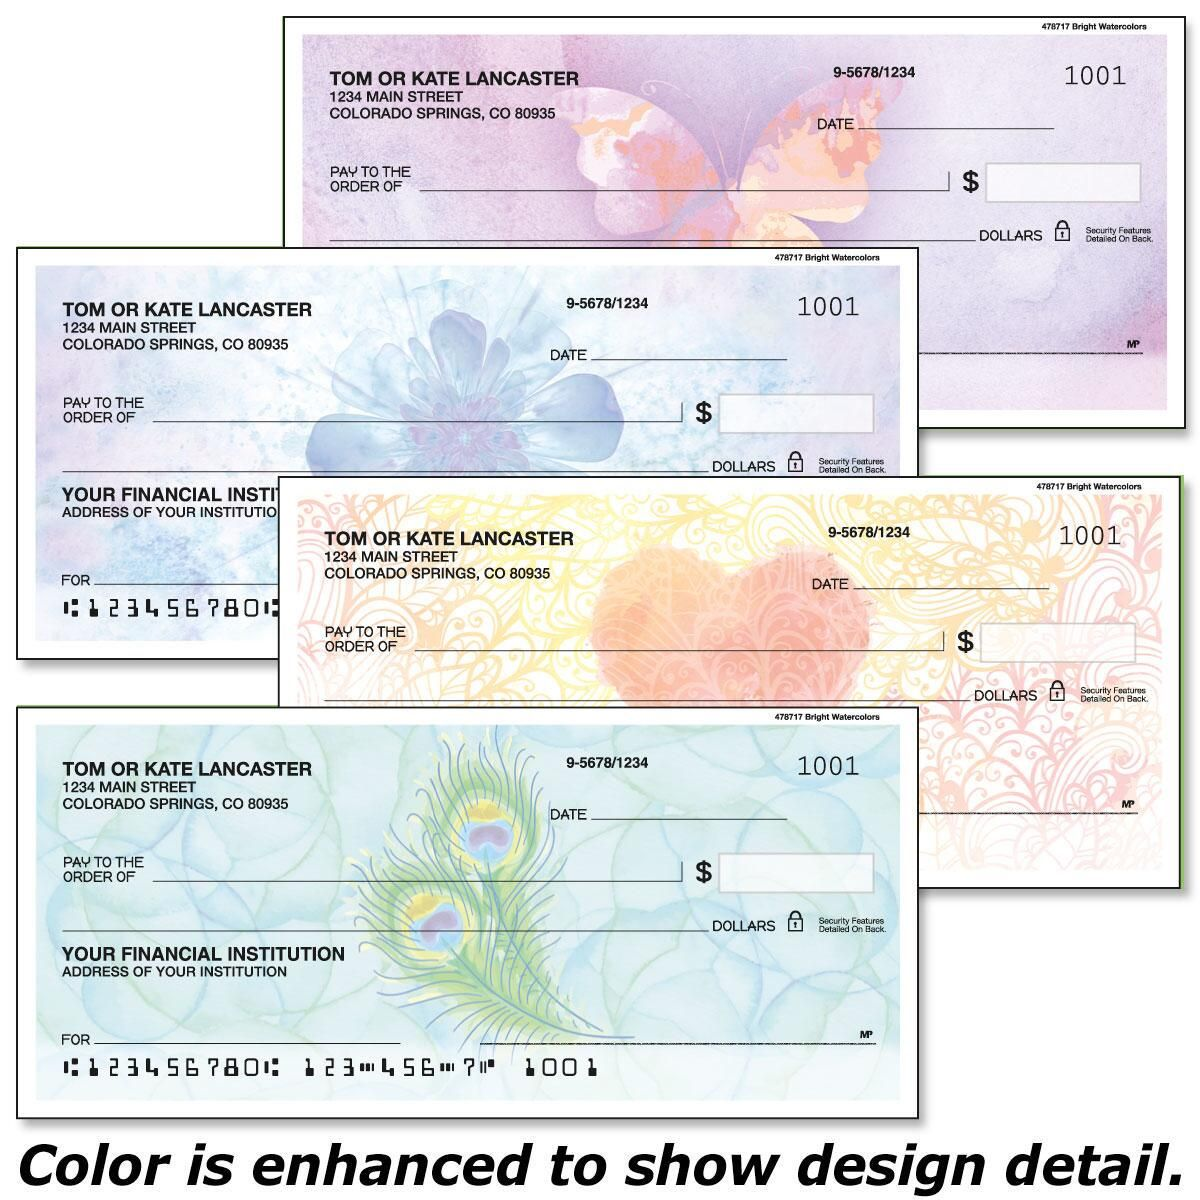 Bright Watercolors Single Checks